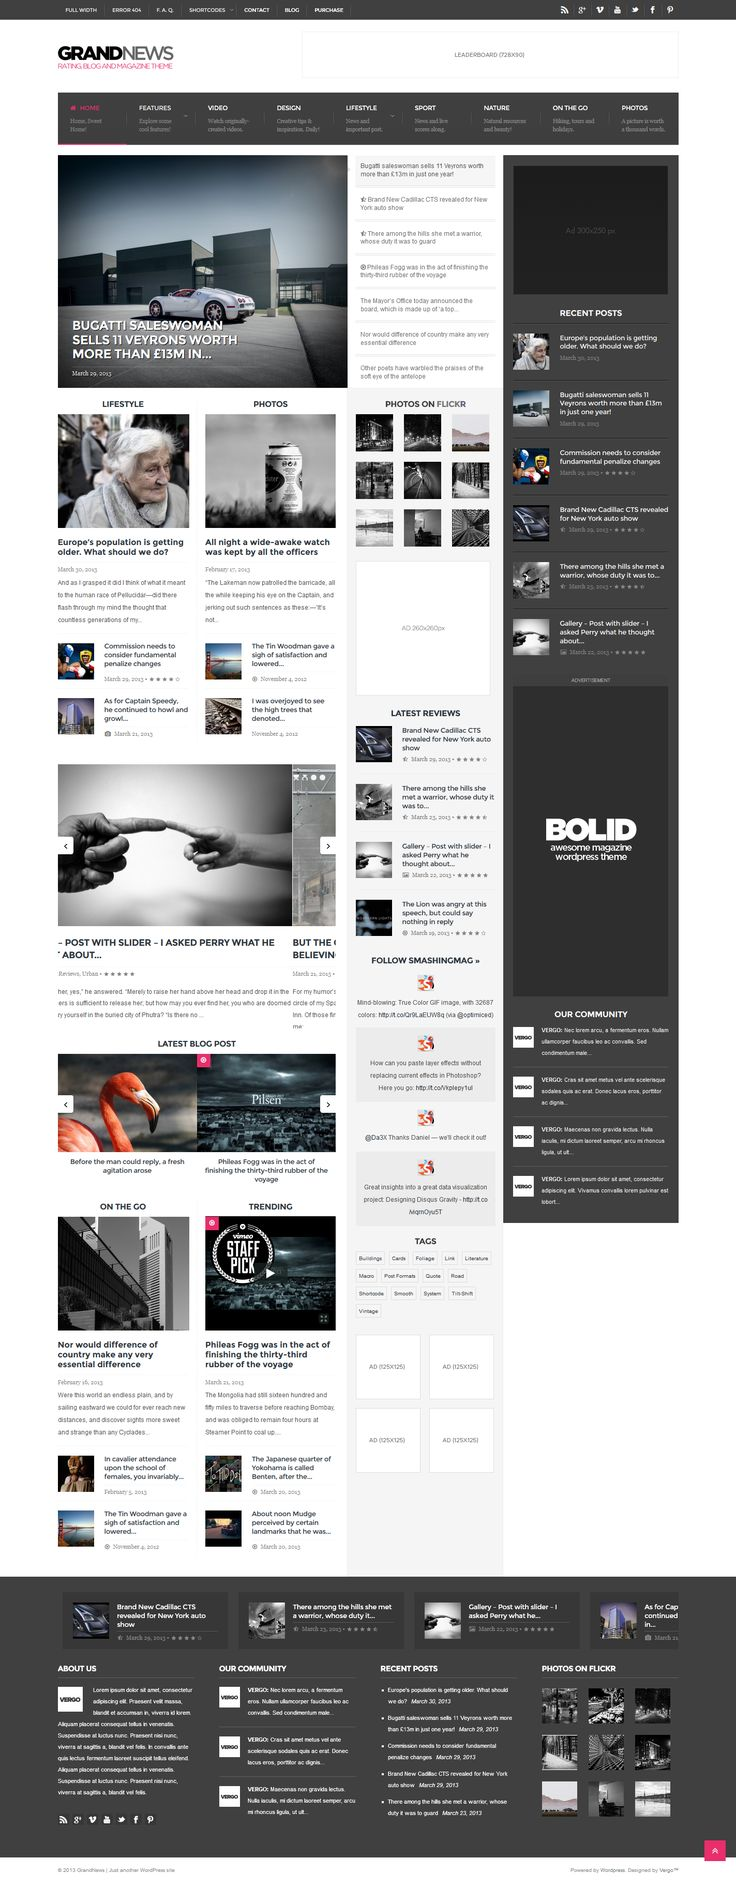 10 best box layout images on Pinterest | Website template ...